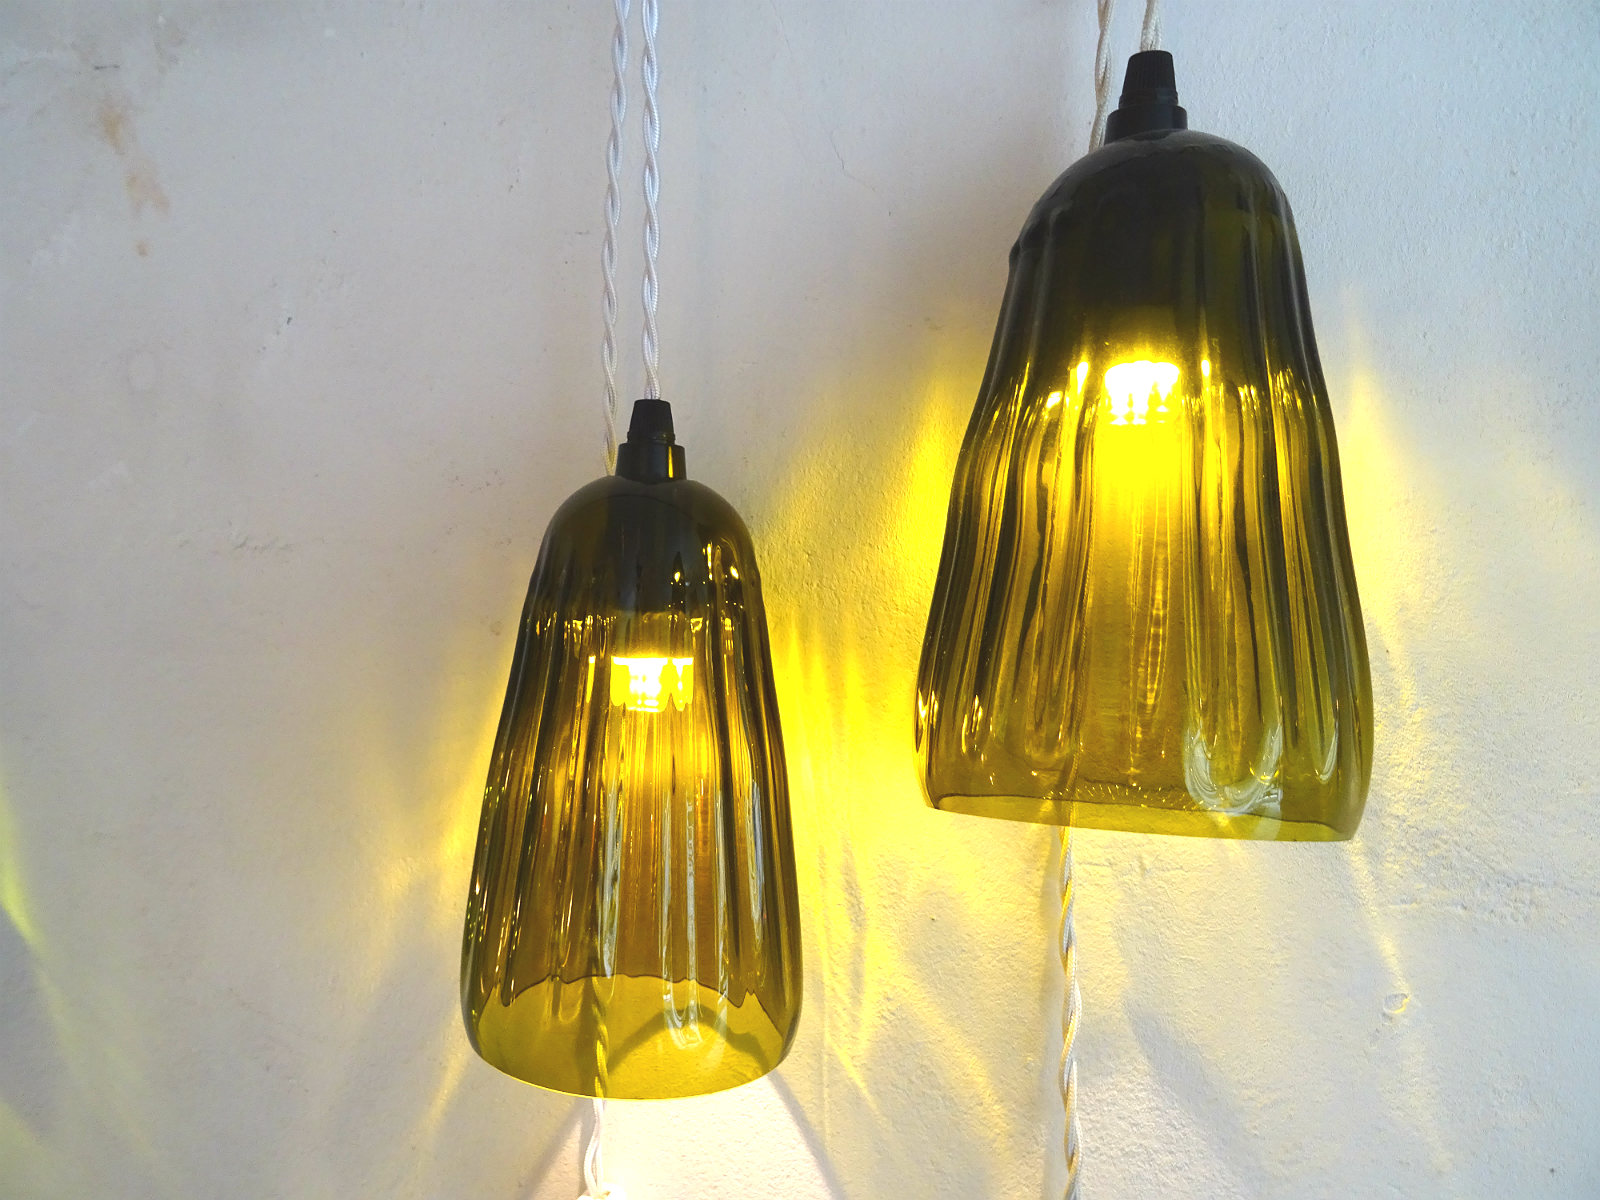 Rombachs-Wall lamps